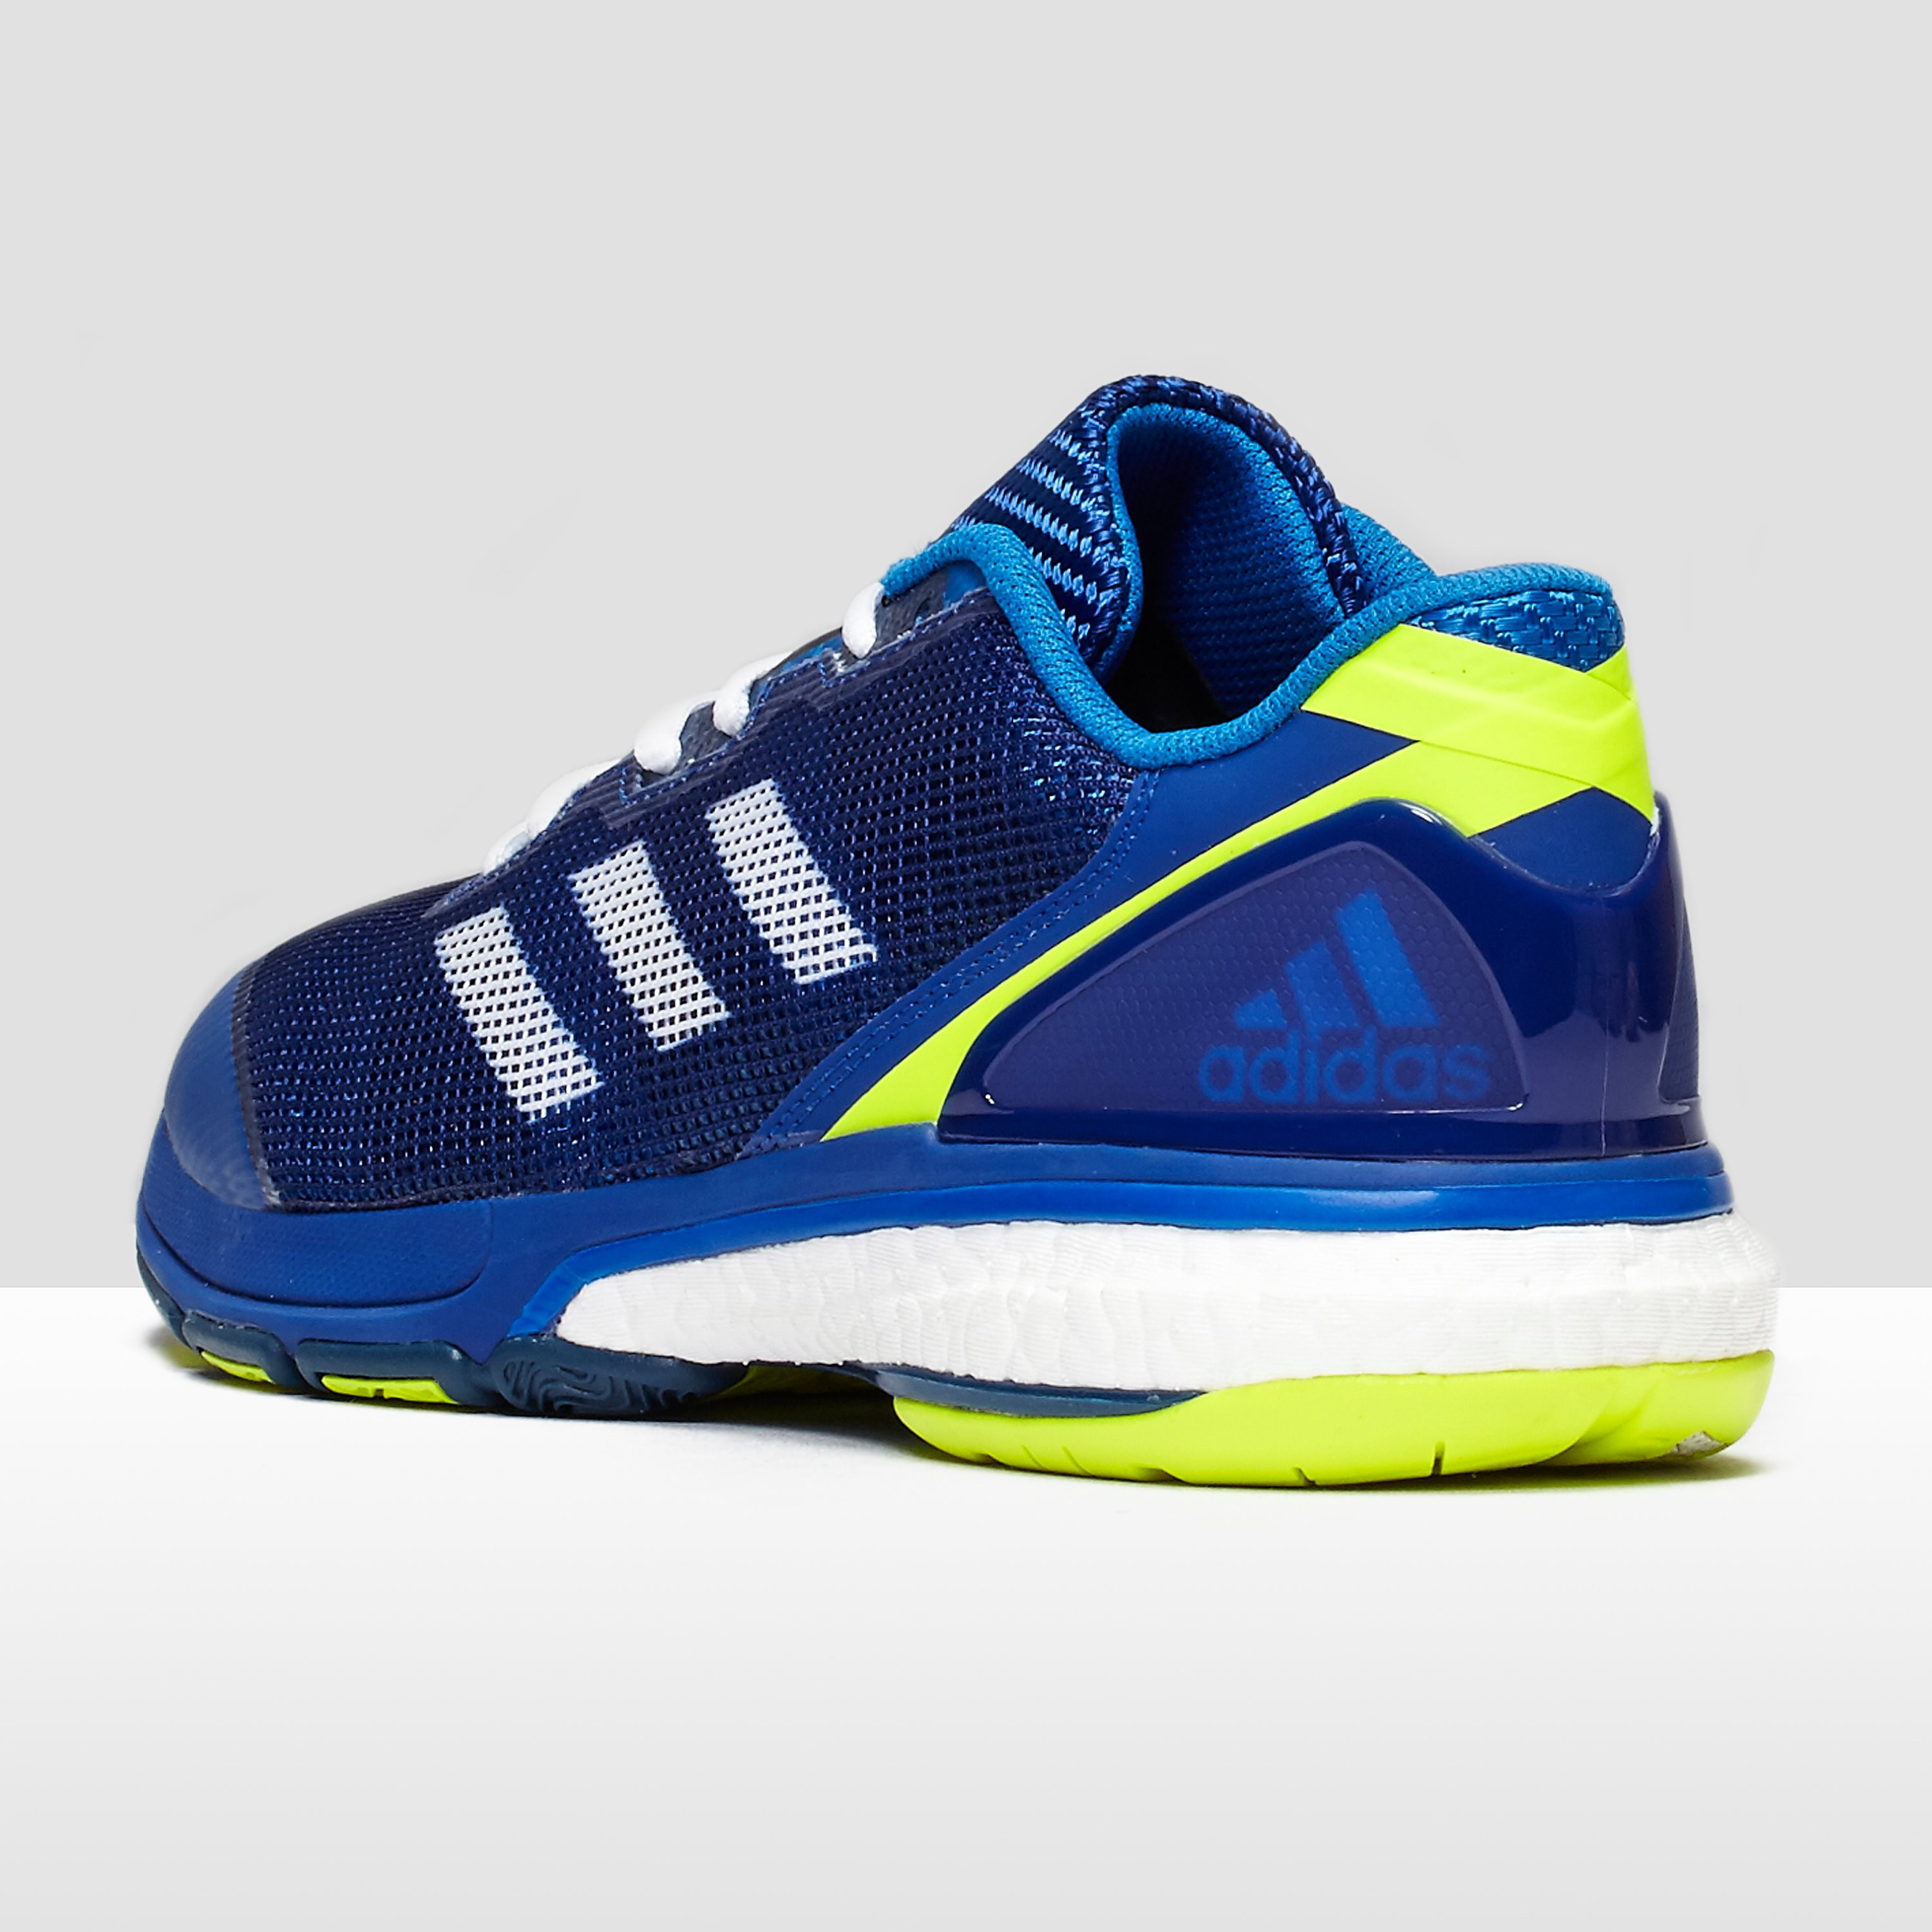 adidas Stabil Boost Men's Shoes